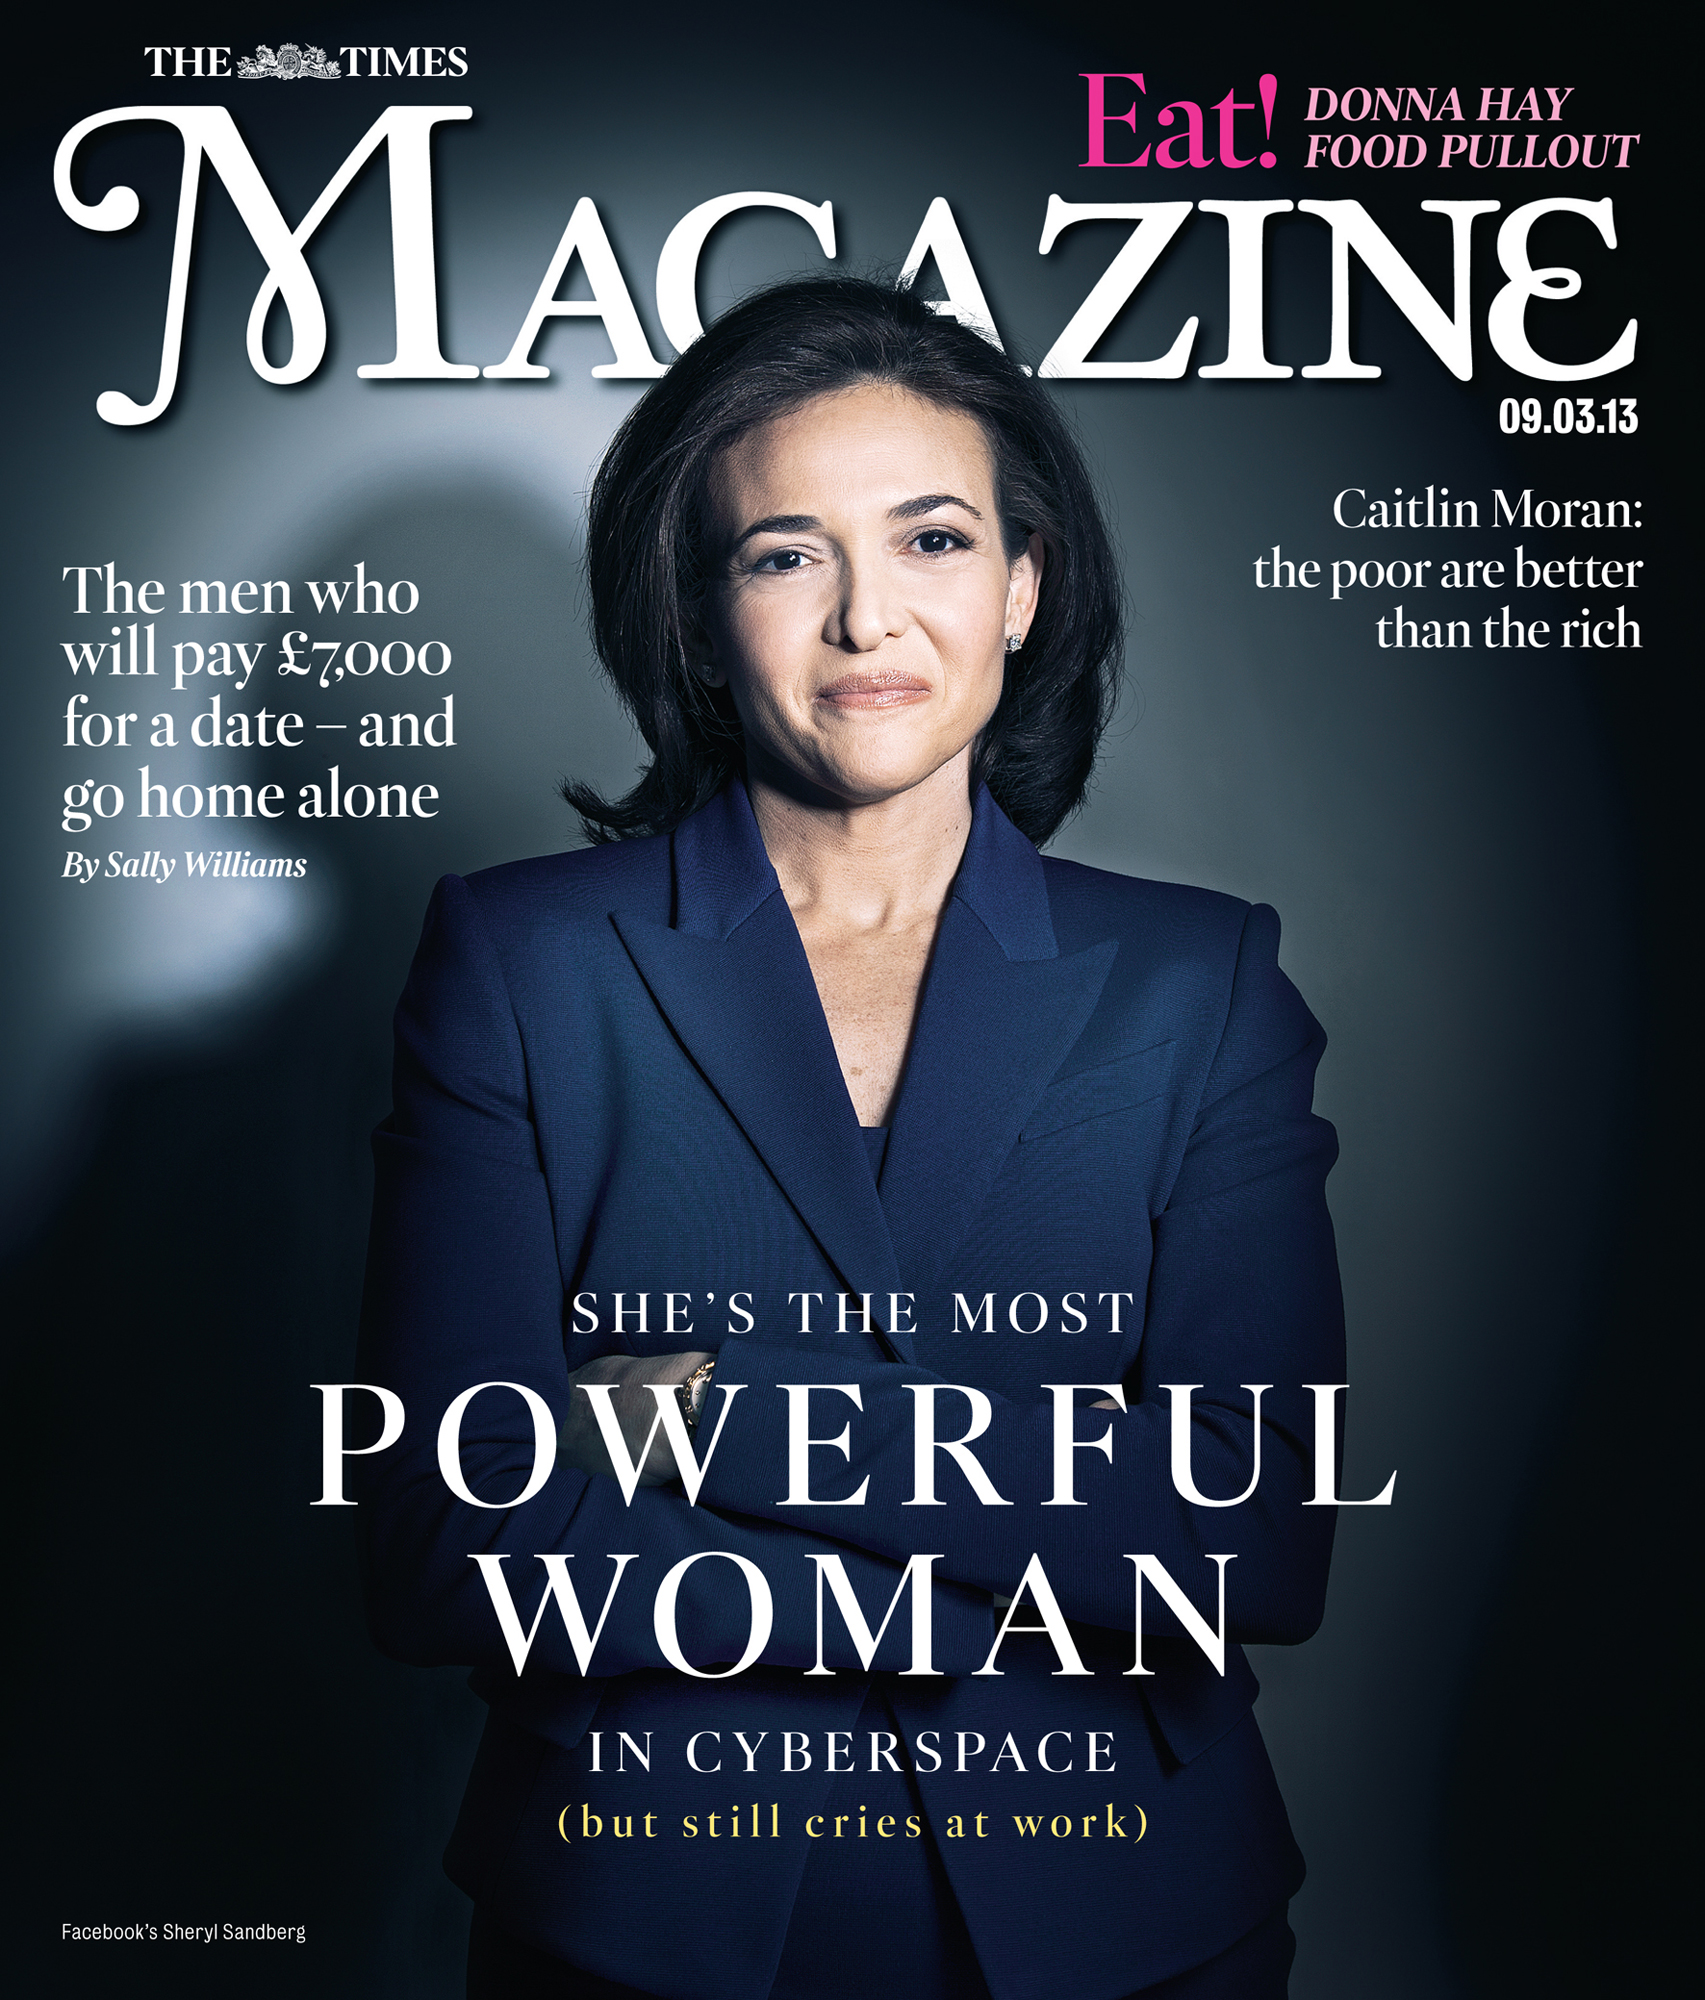 business women, facebook coo, Lean in founder sheryl sandberg biography